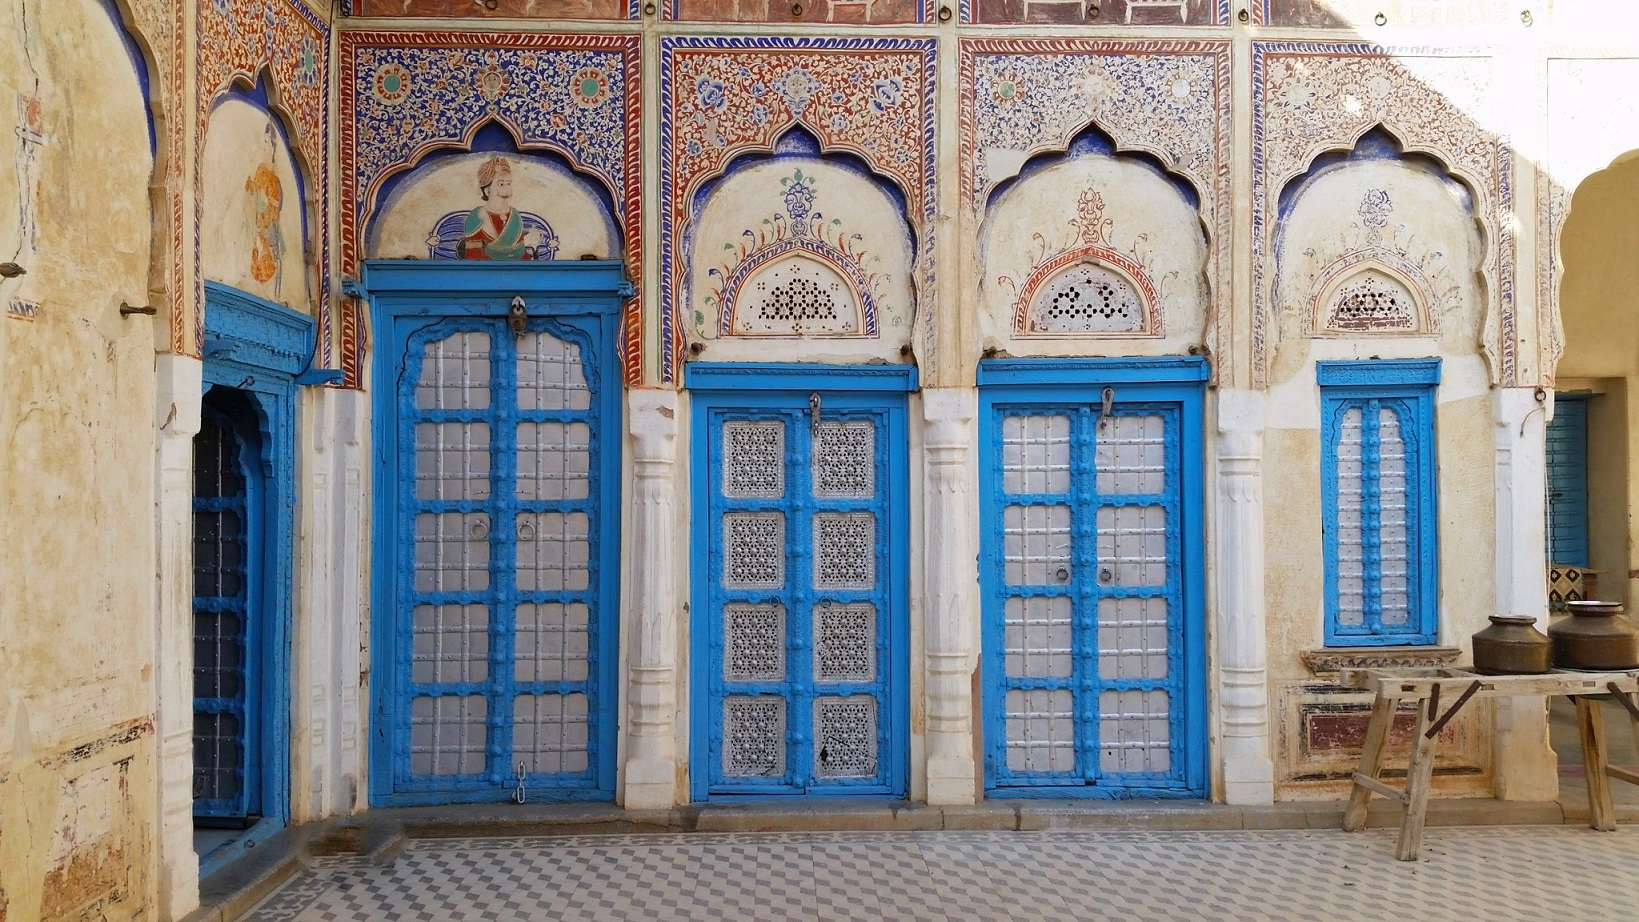 Shekhawati - A Road Trip to Abandoned India!